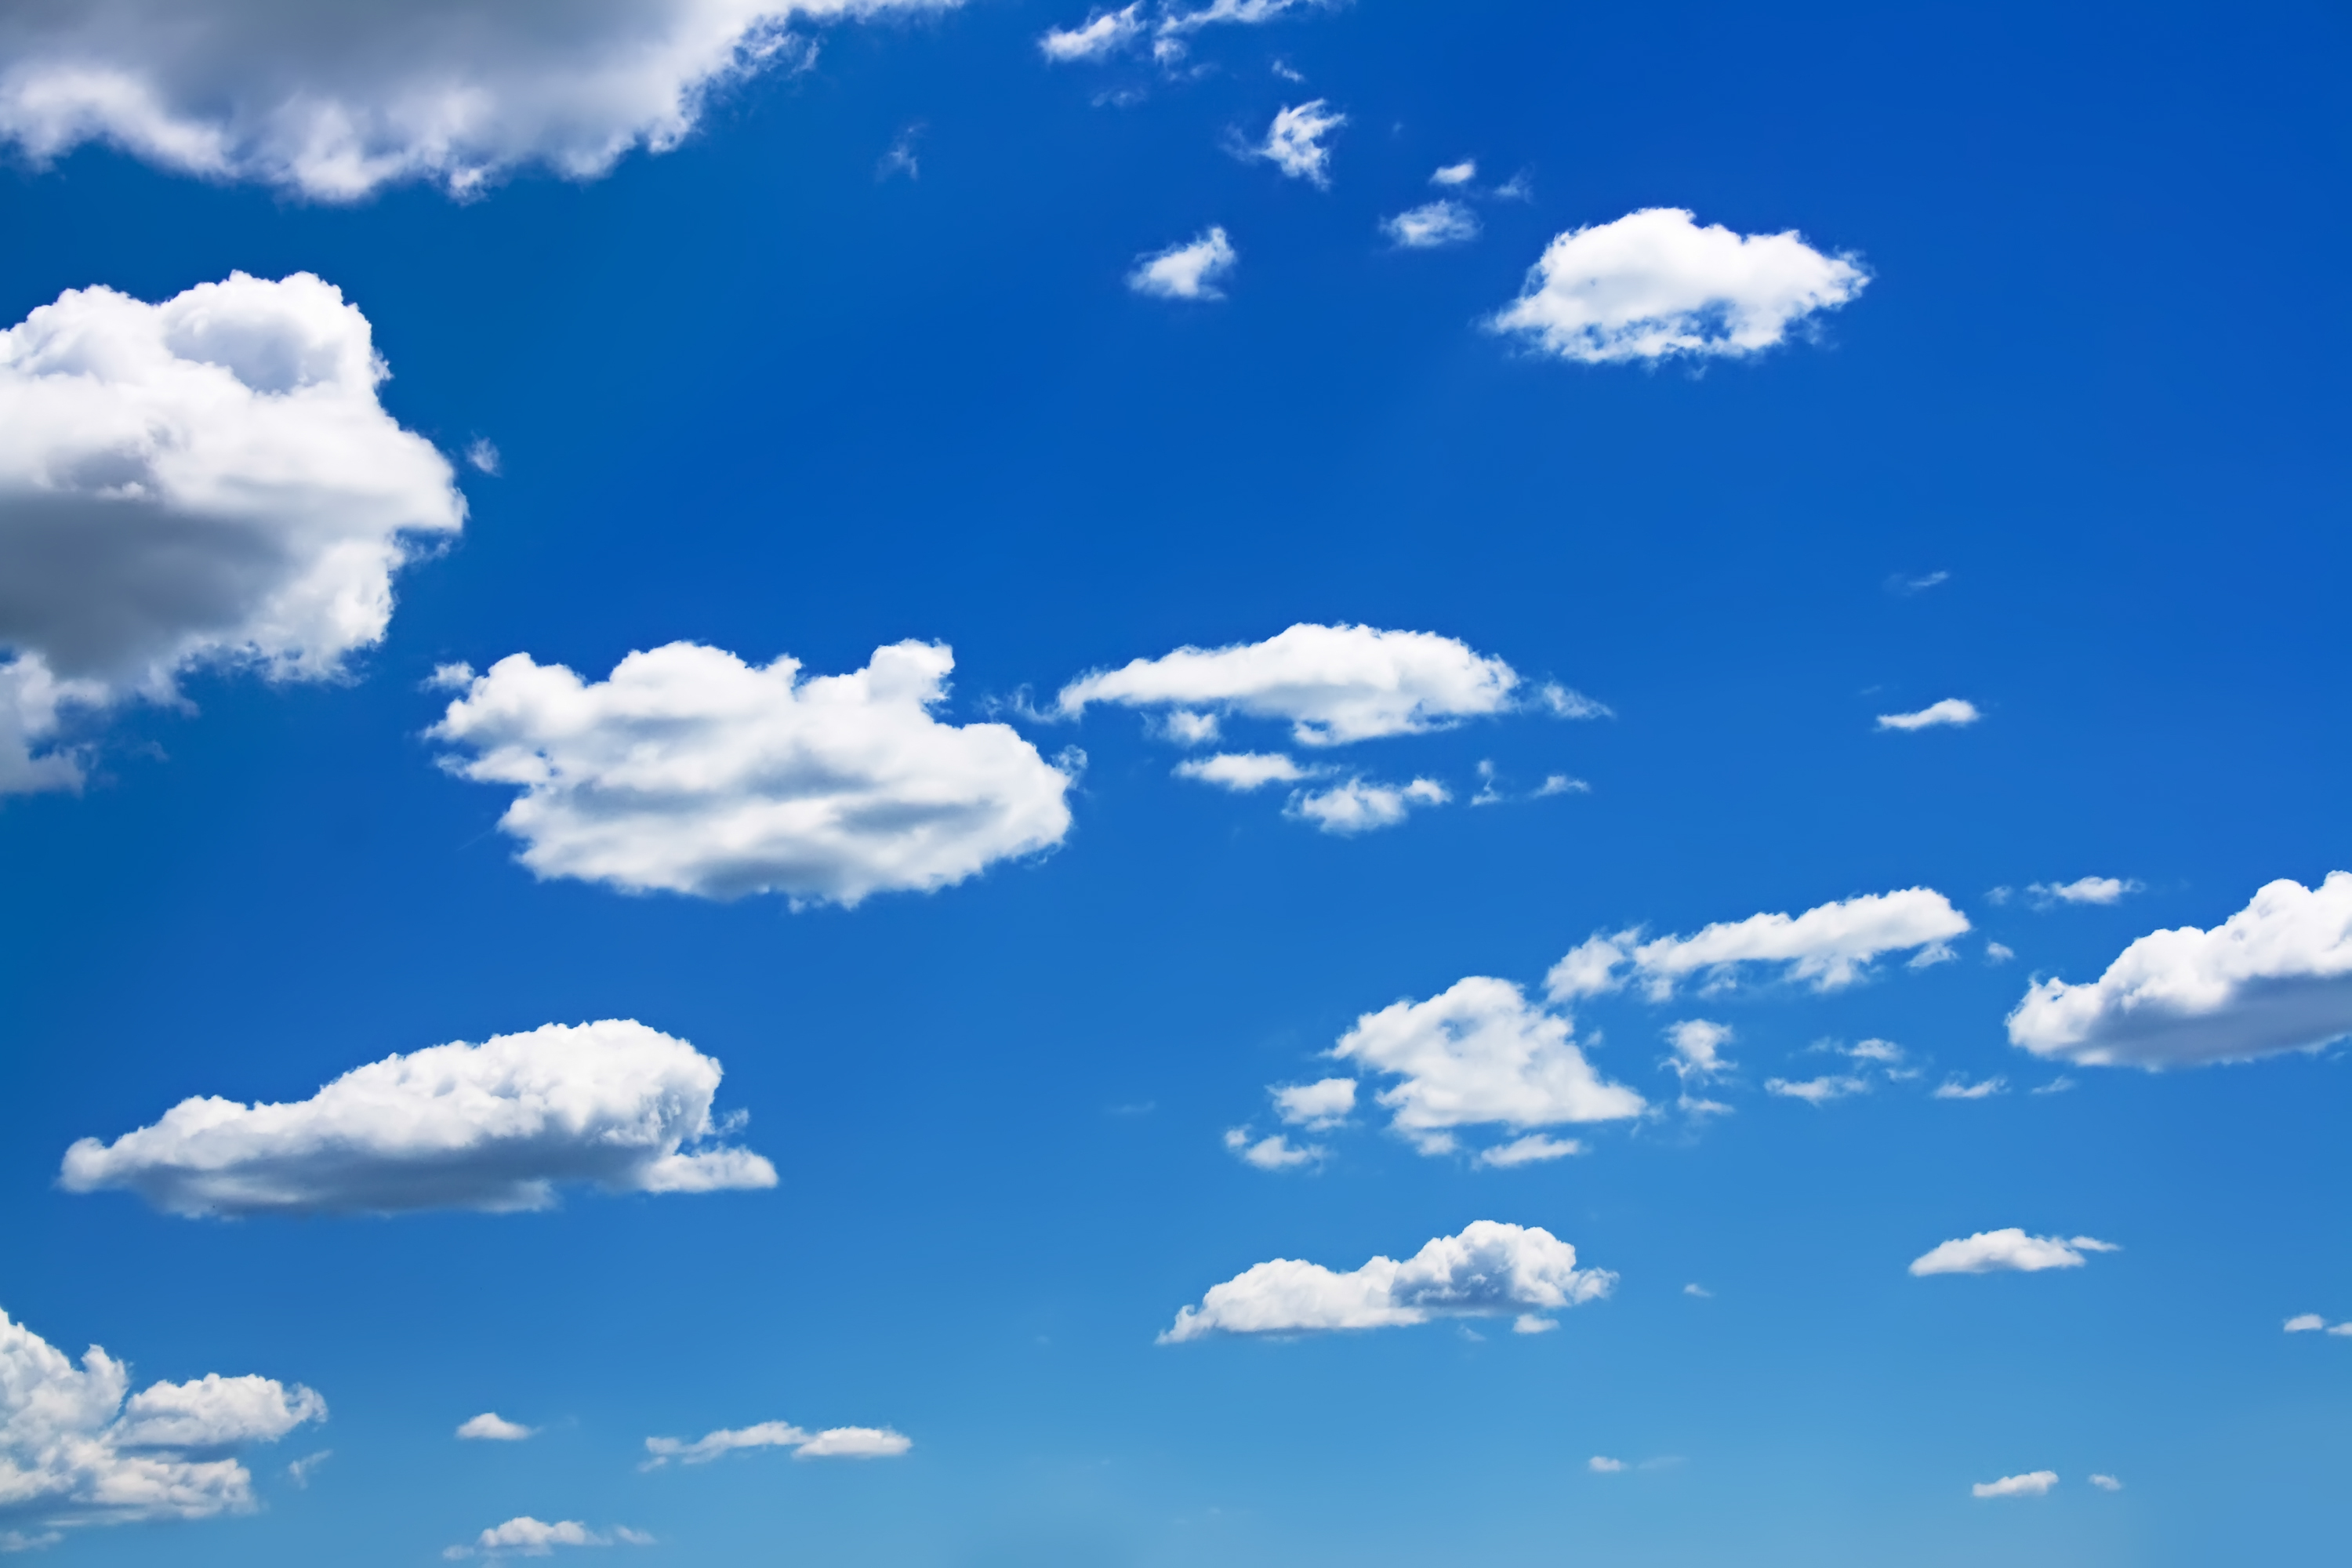 Small Clouds on Blue Sky, Blue, Clear, Clouds, Cloudy, HQ Photo